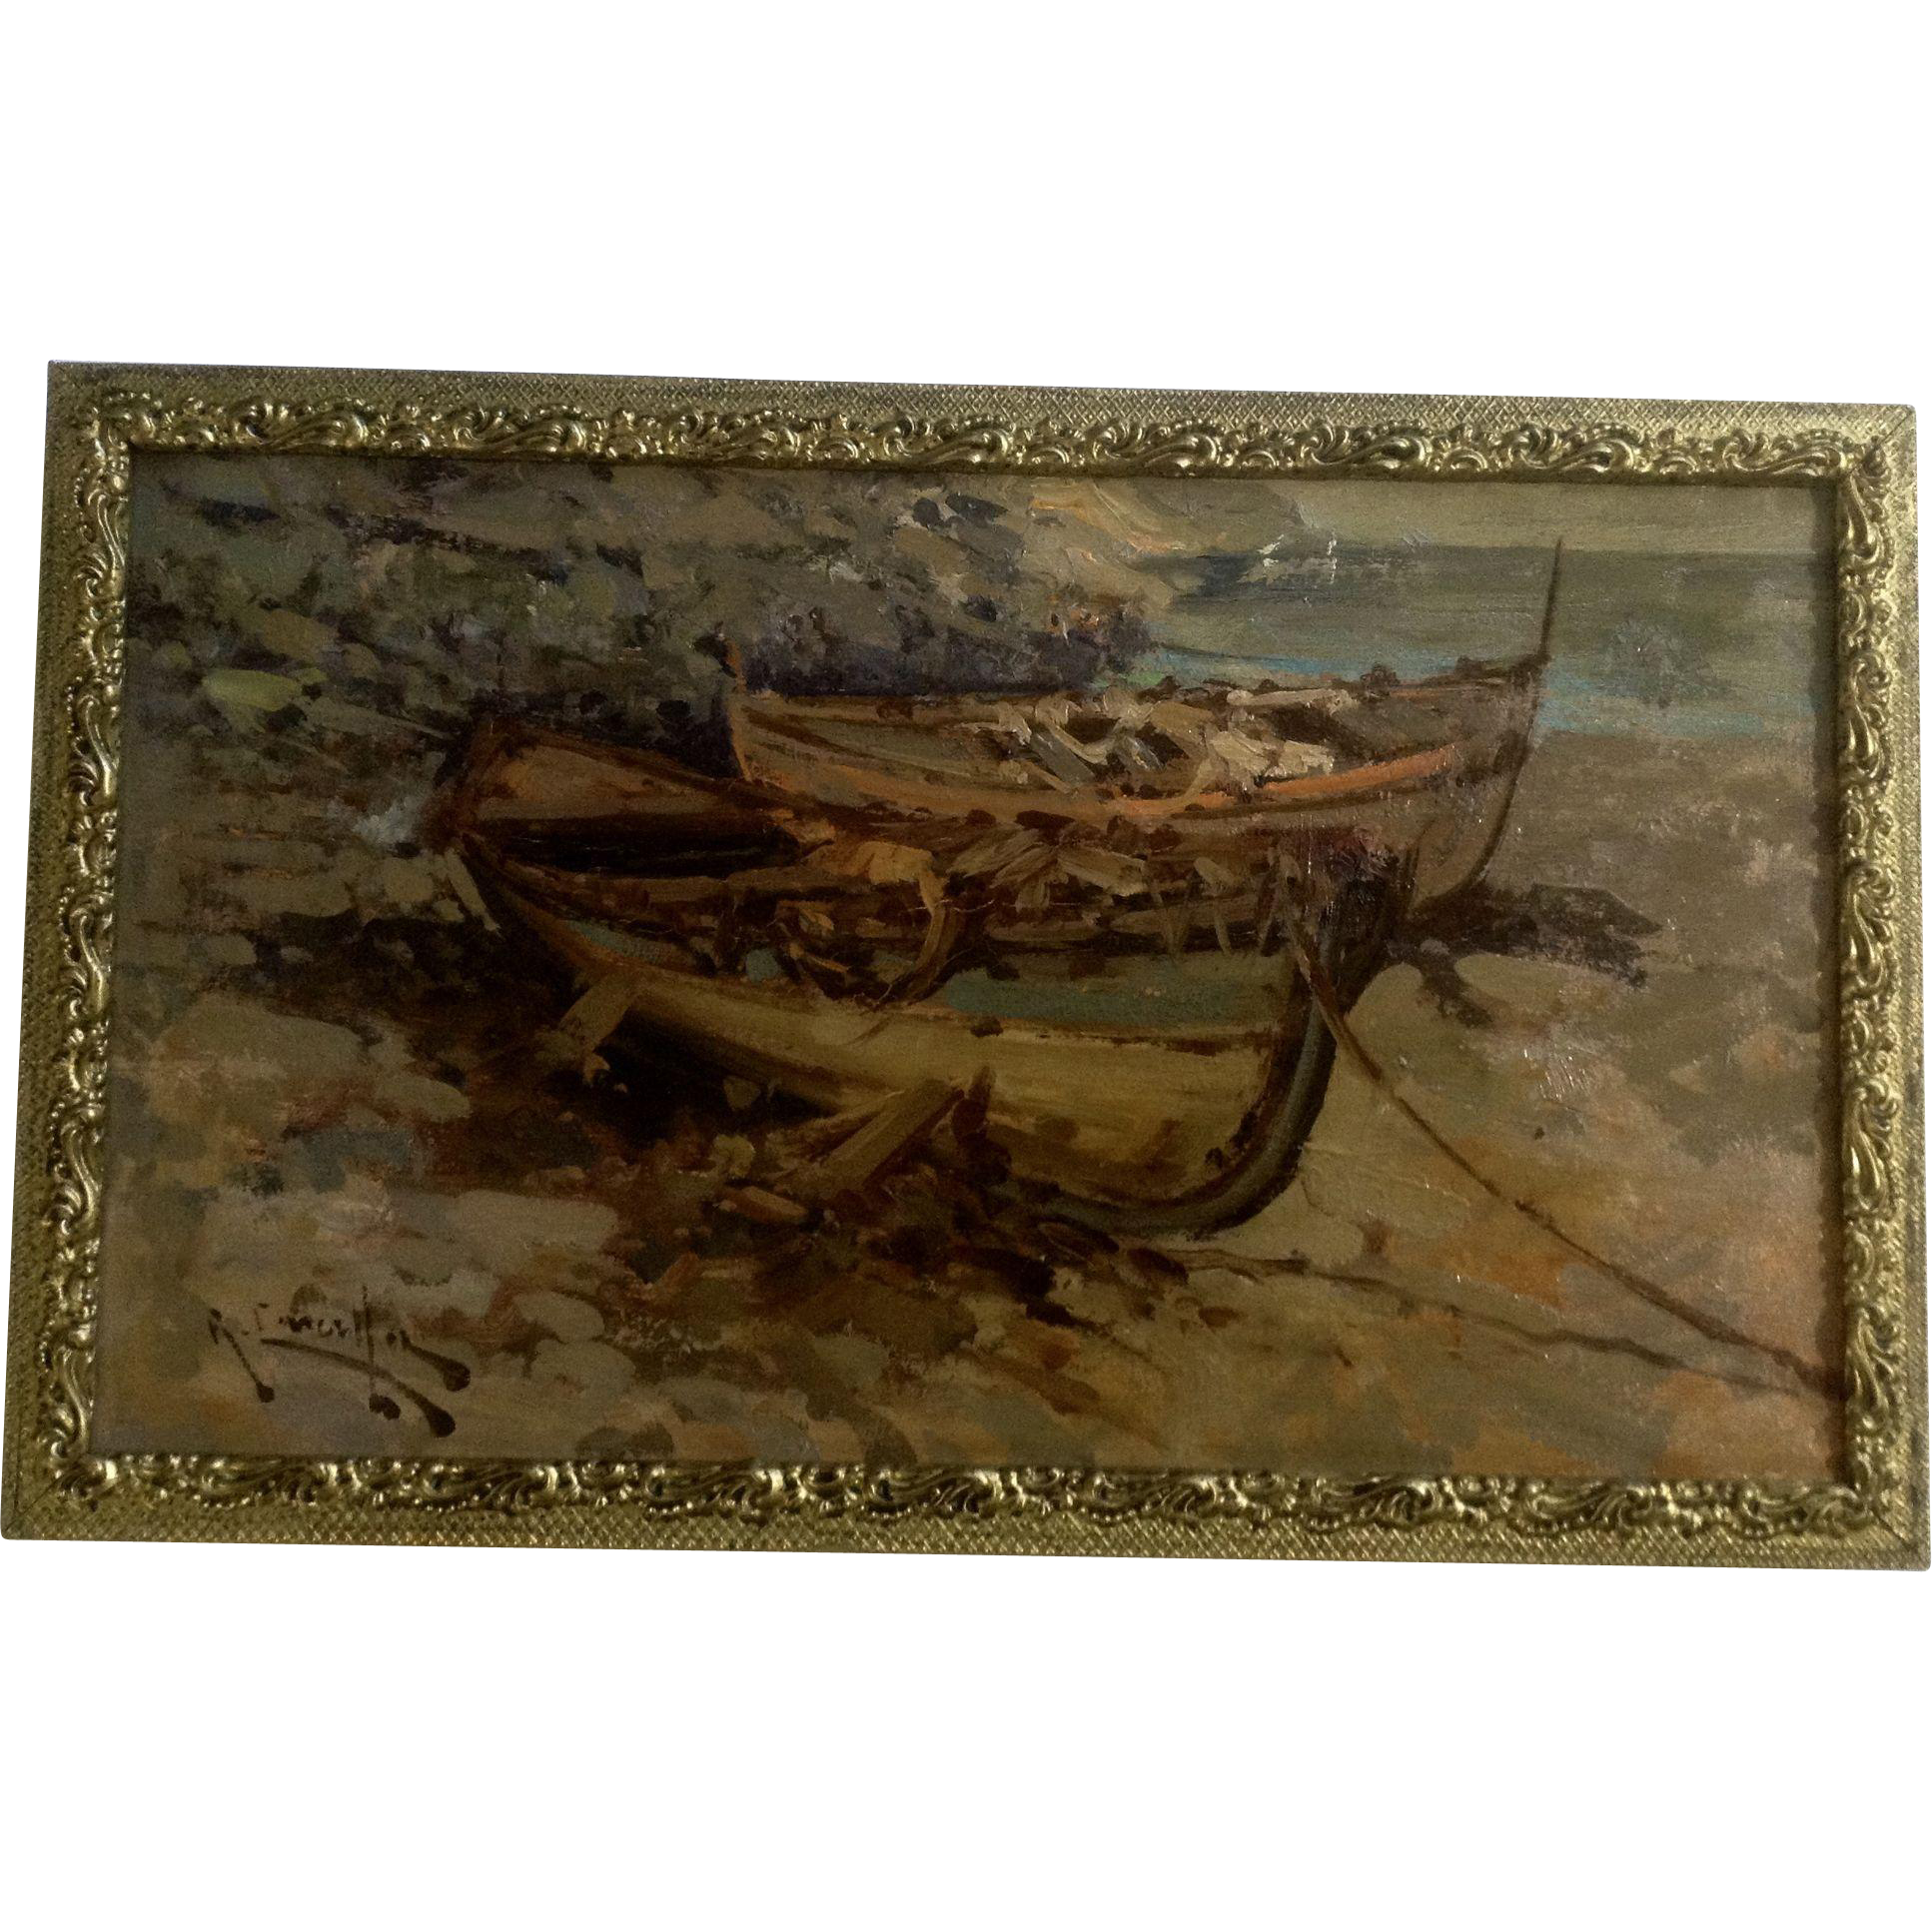 Old Fishing Boats On Beach: R Muller, Fishing Boats On A Beach, European Oil Painting